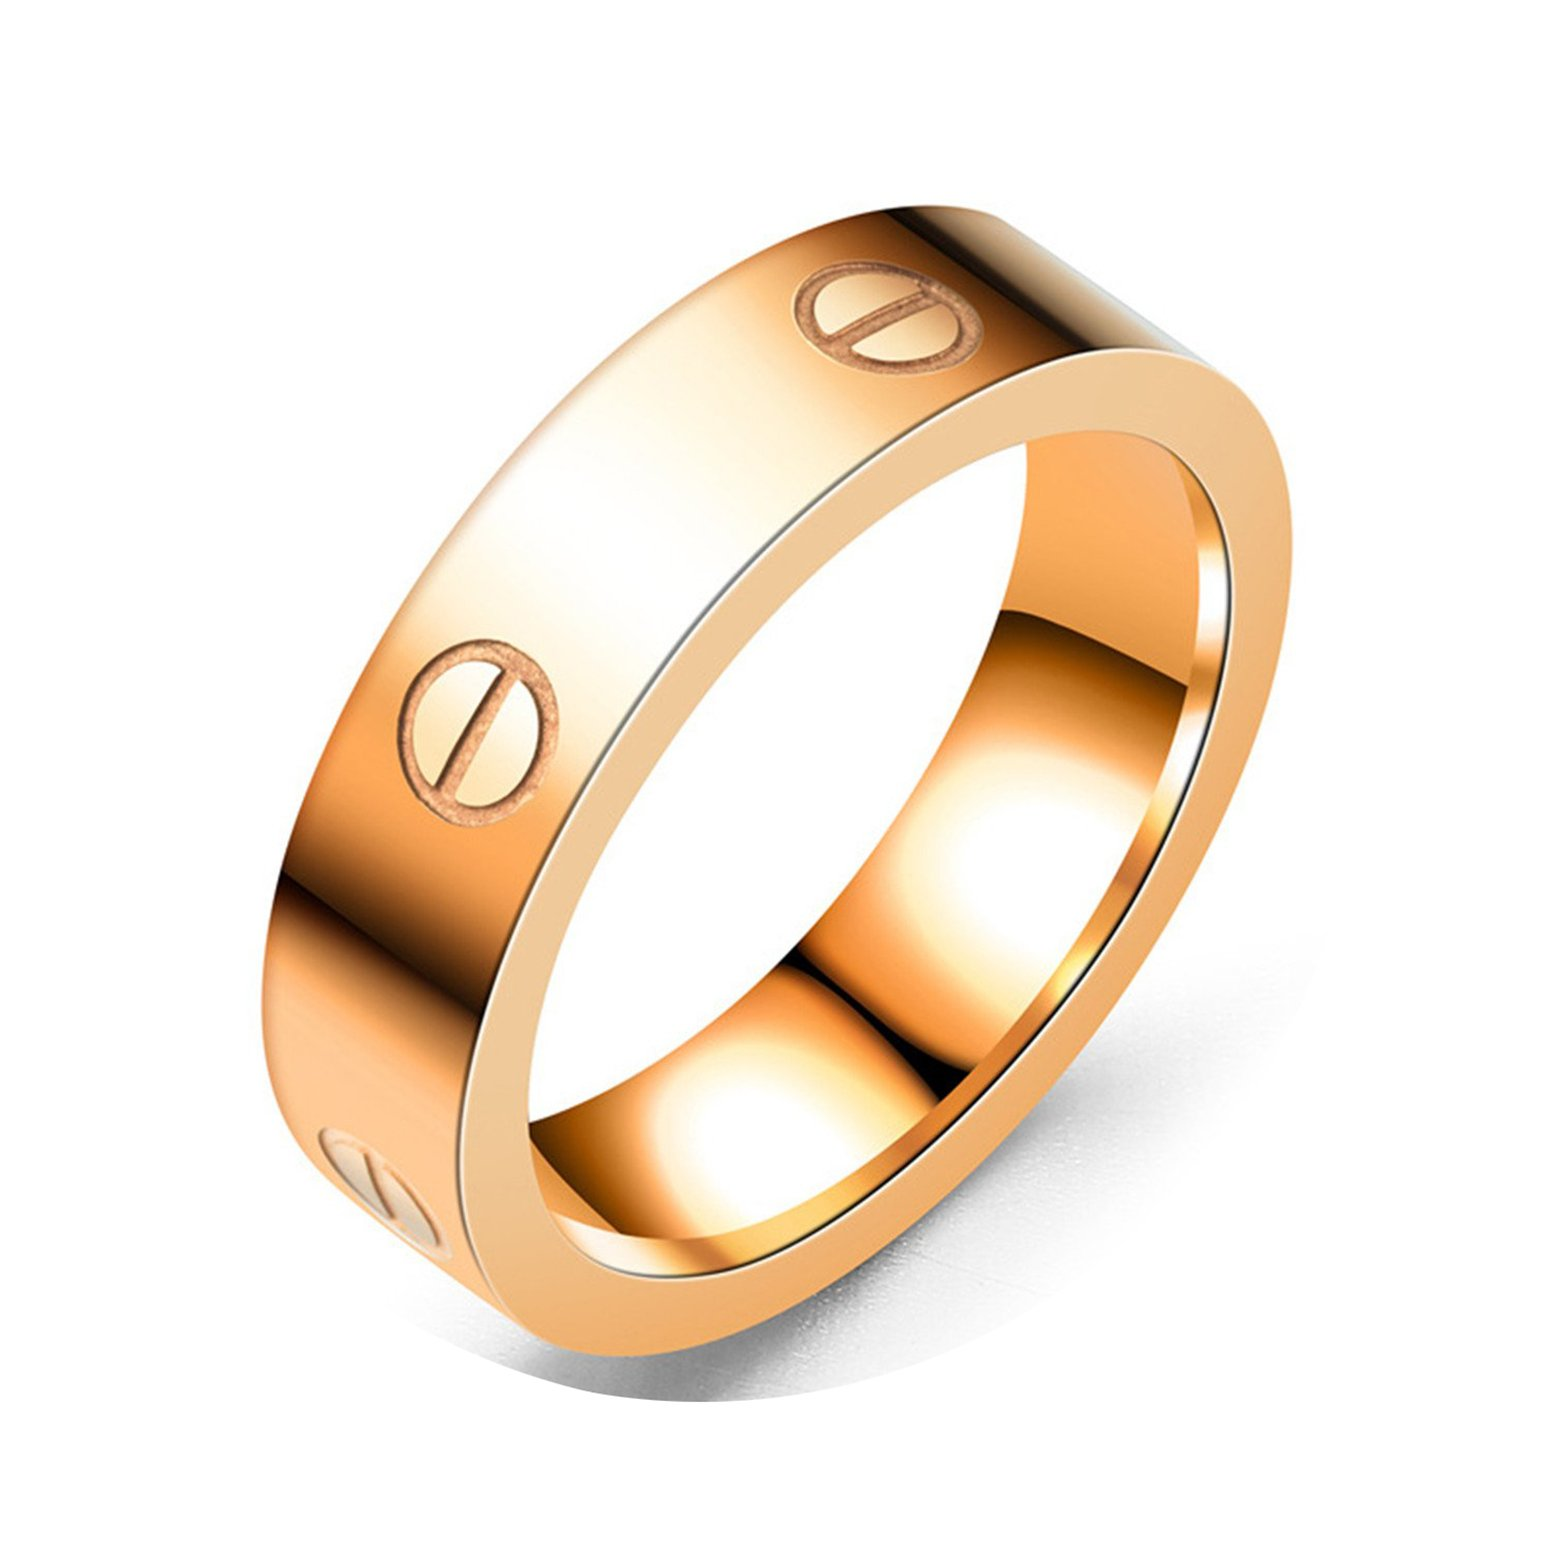 Mintrayor Lifetime Love Rings for Women Couples Promise Engagement Titanium Stainless Steel Band Size 9 RoseGold